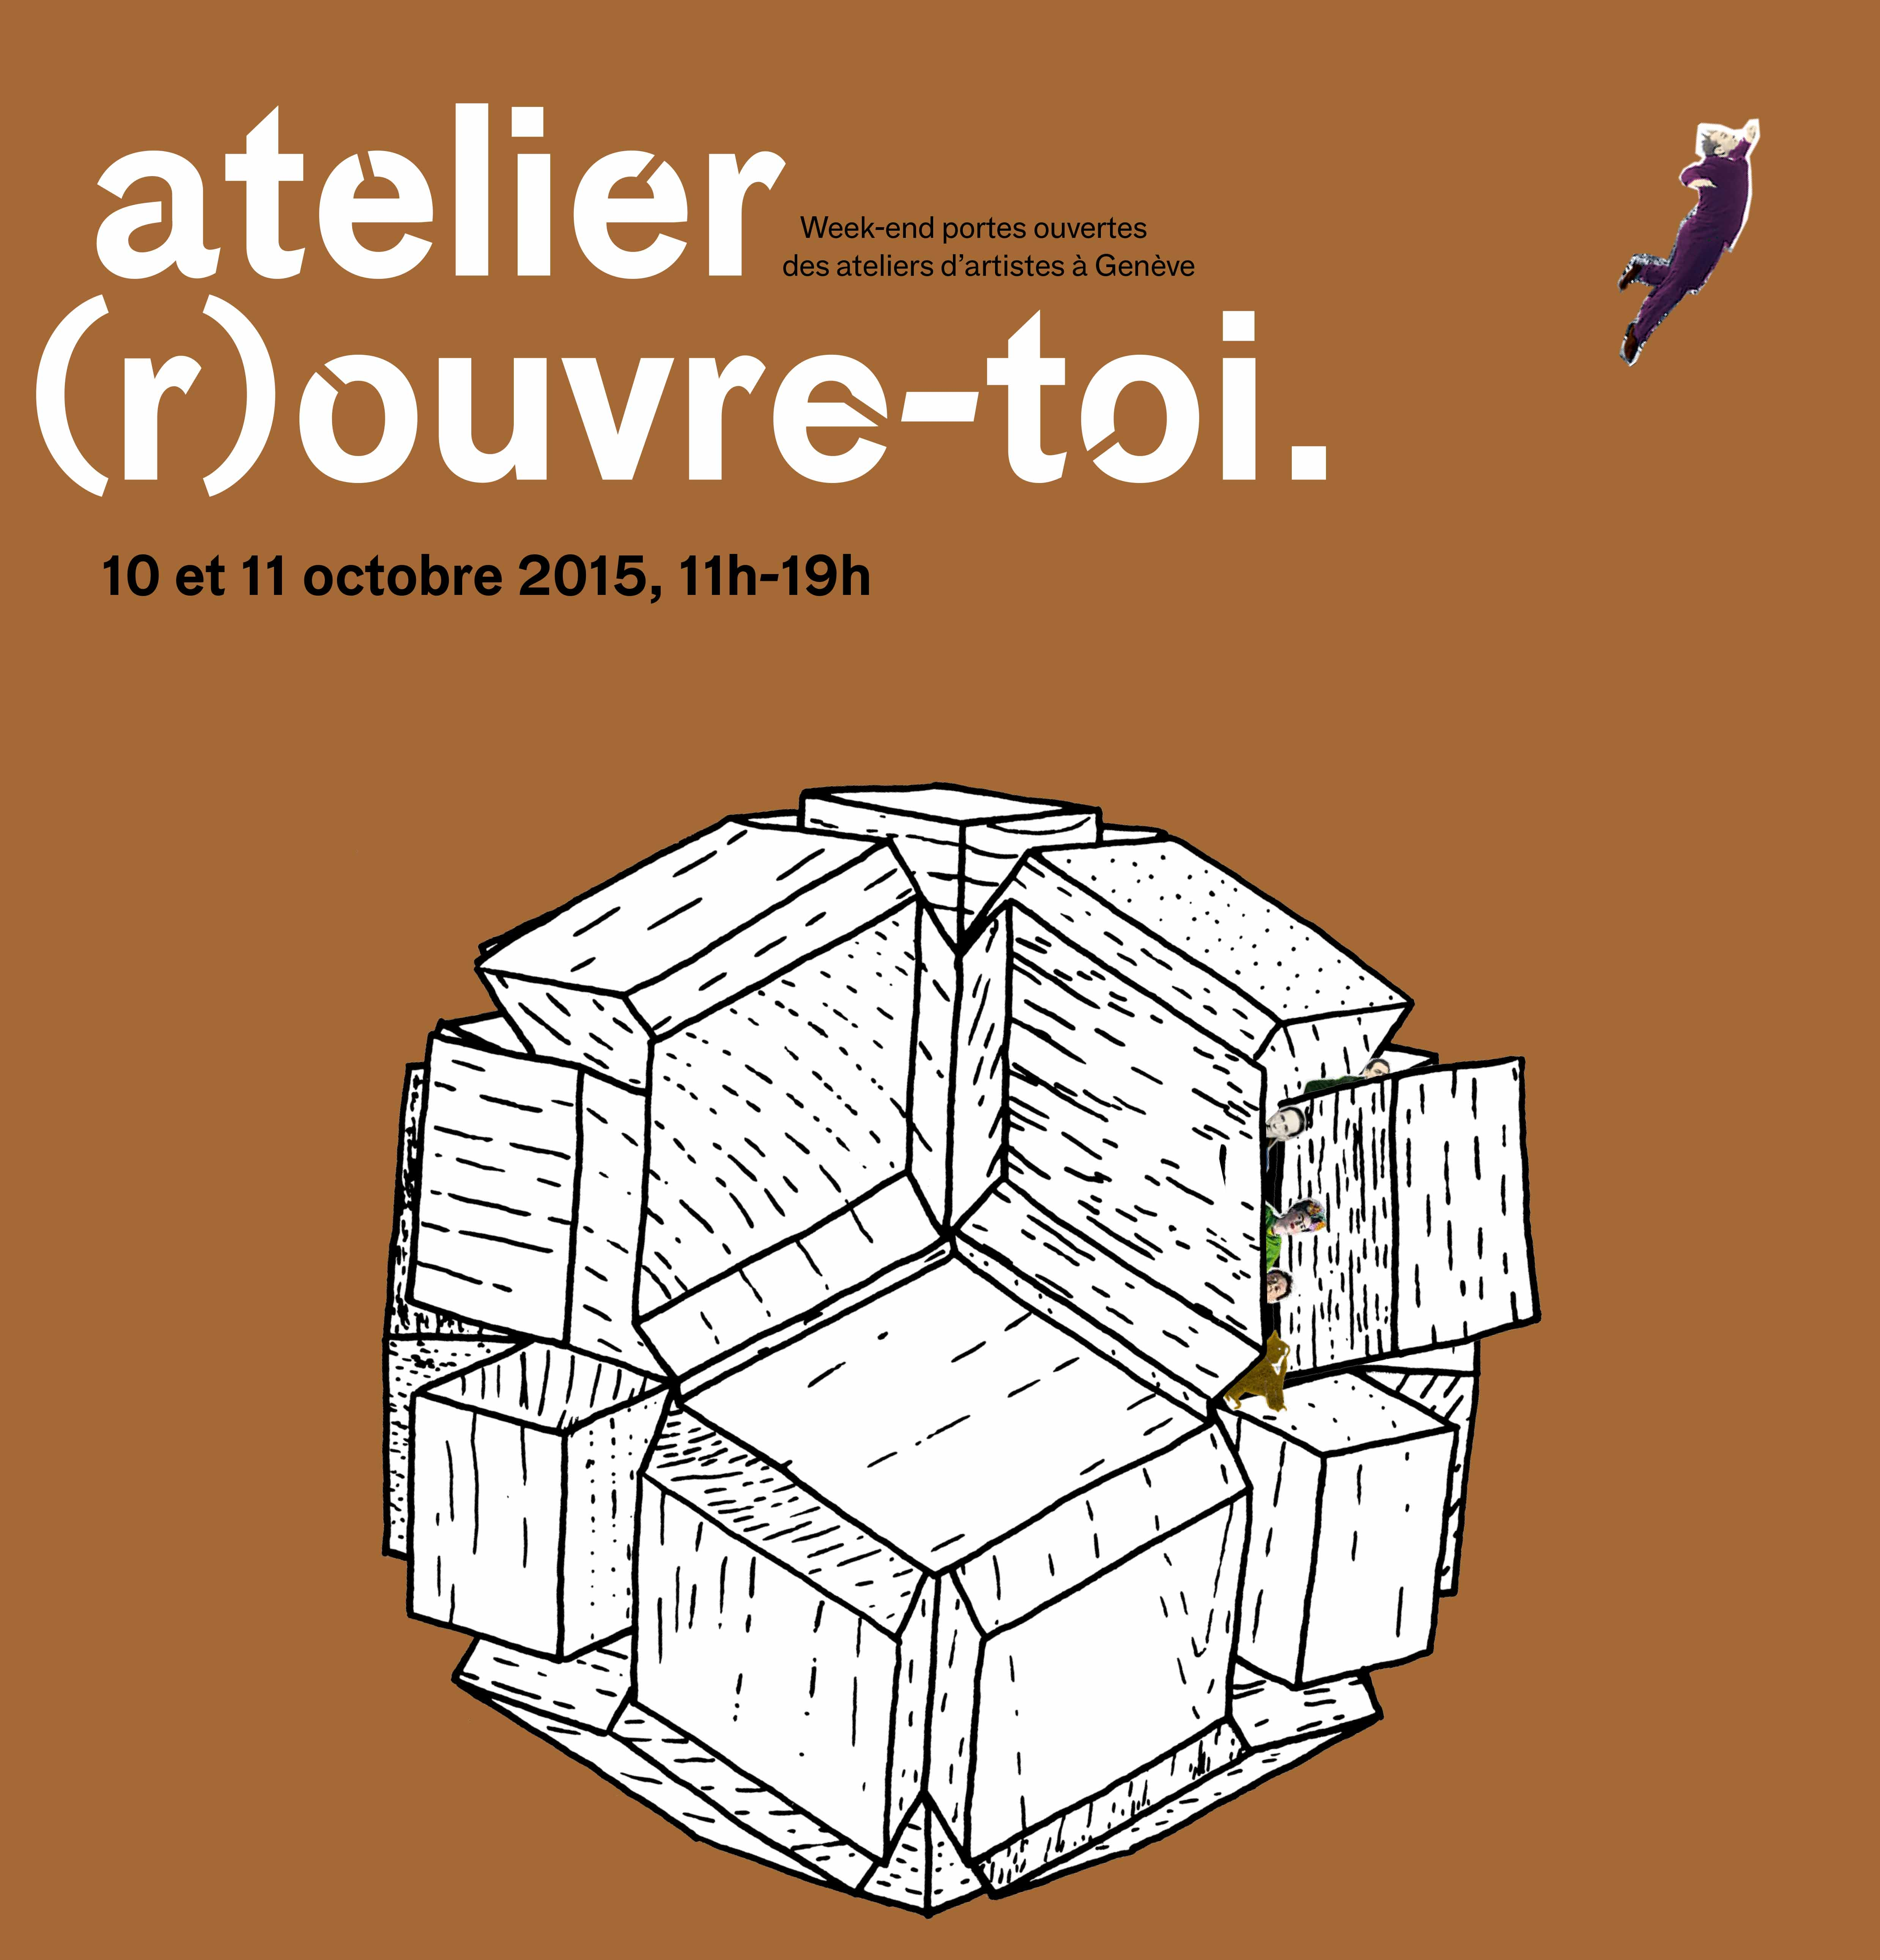 http://ouvre-toi.act-art.ch